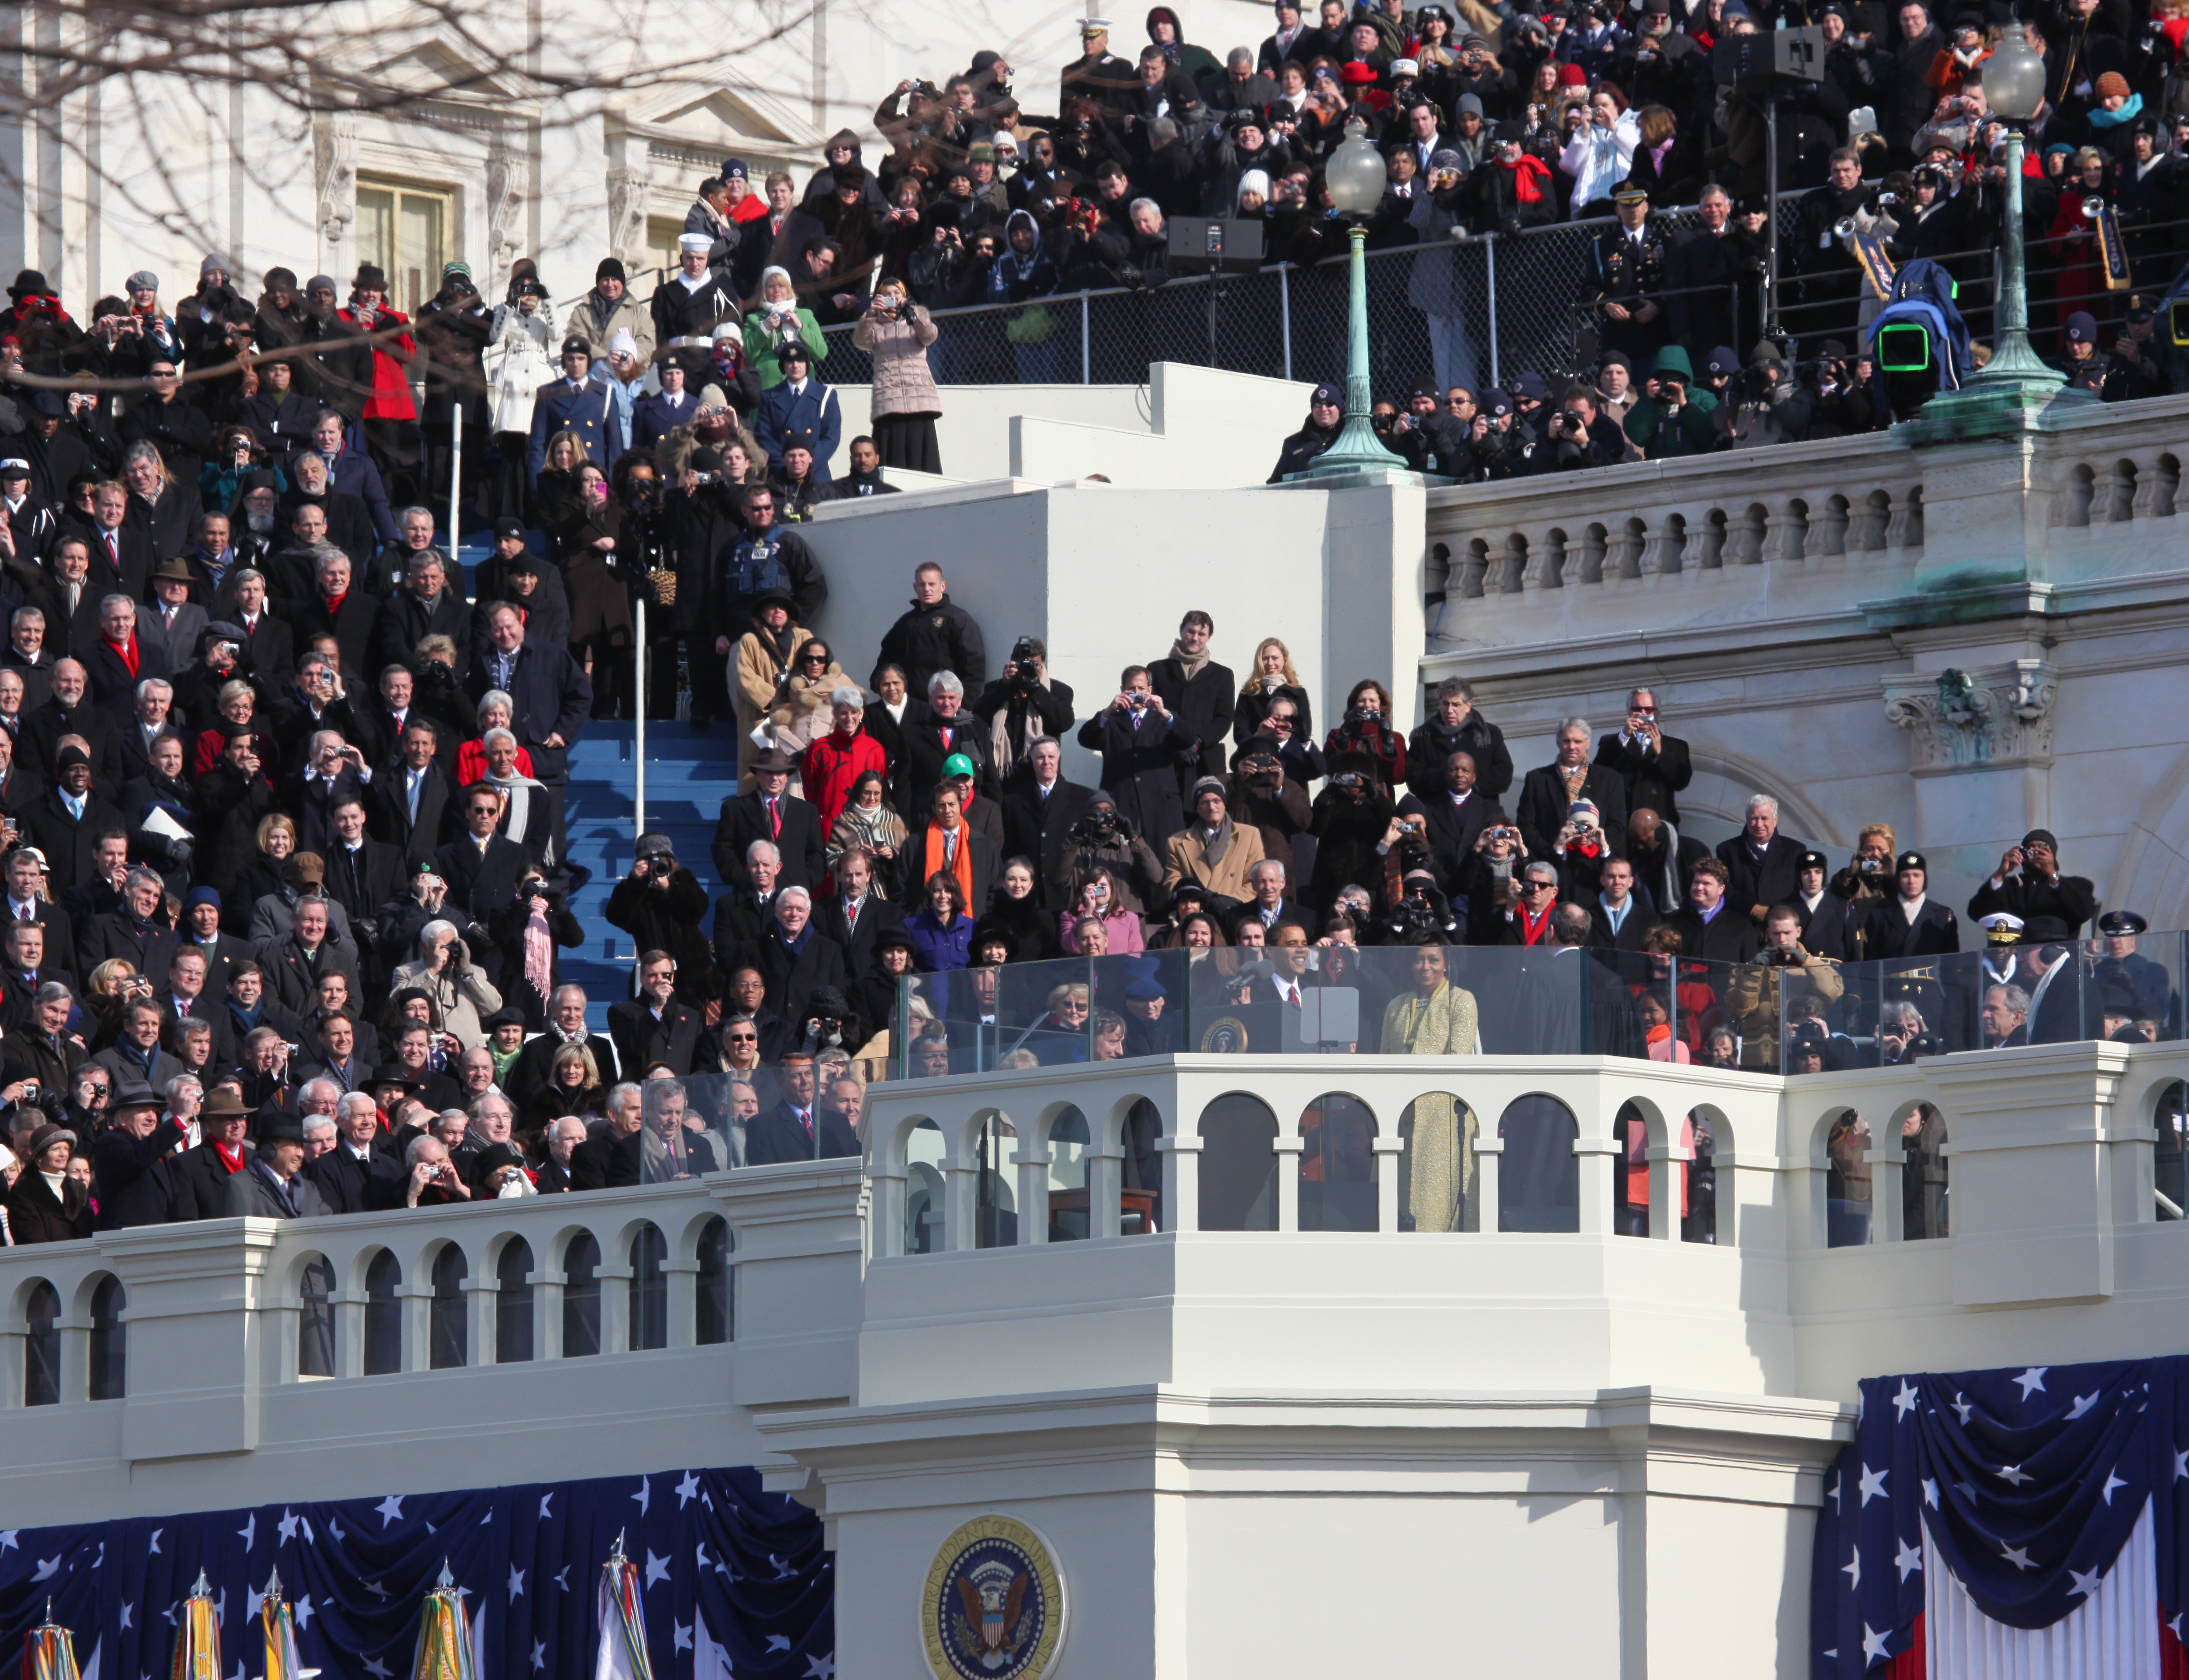 http://upload.wikimedia.org/wikipedia/commons/d/d6/Barack_Obama_Inauguration.jpg